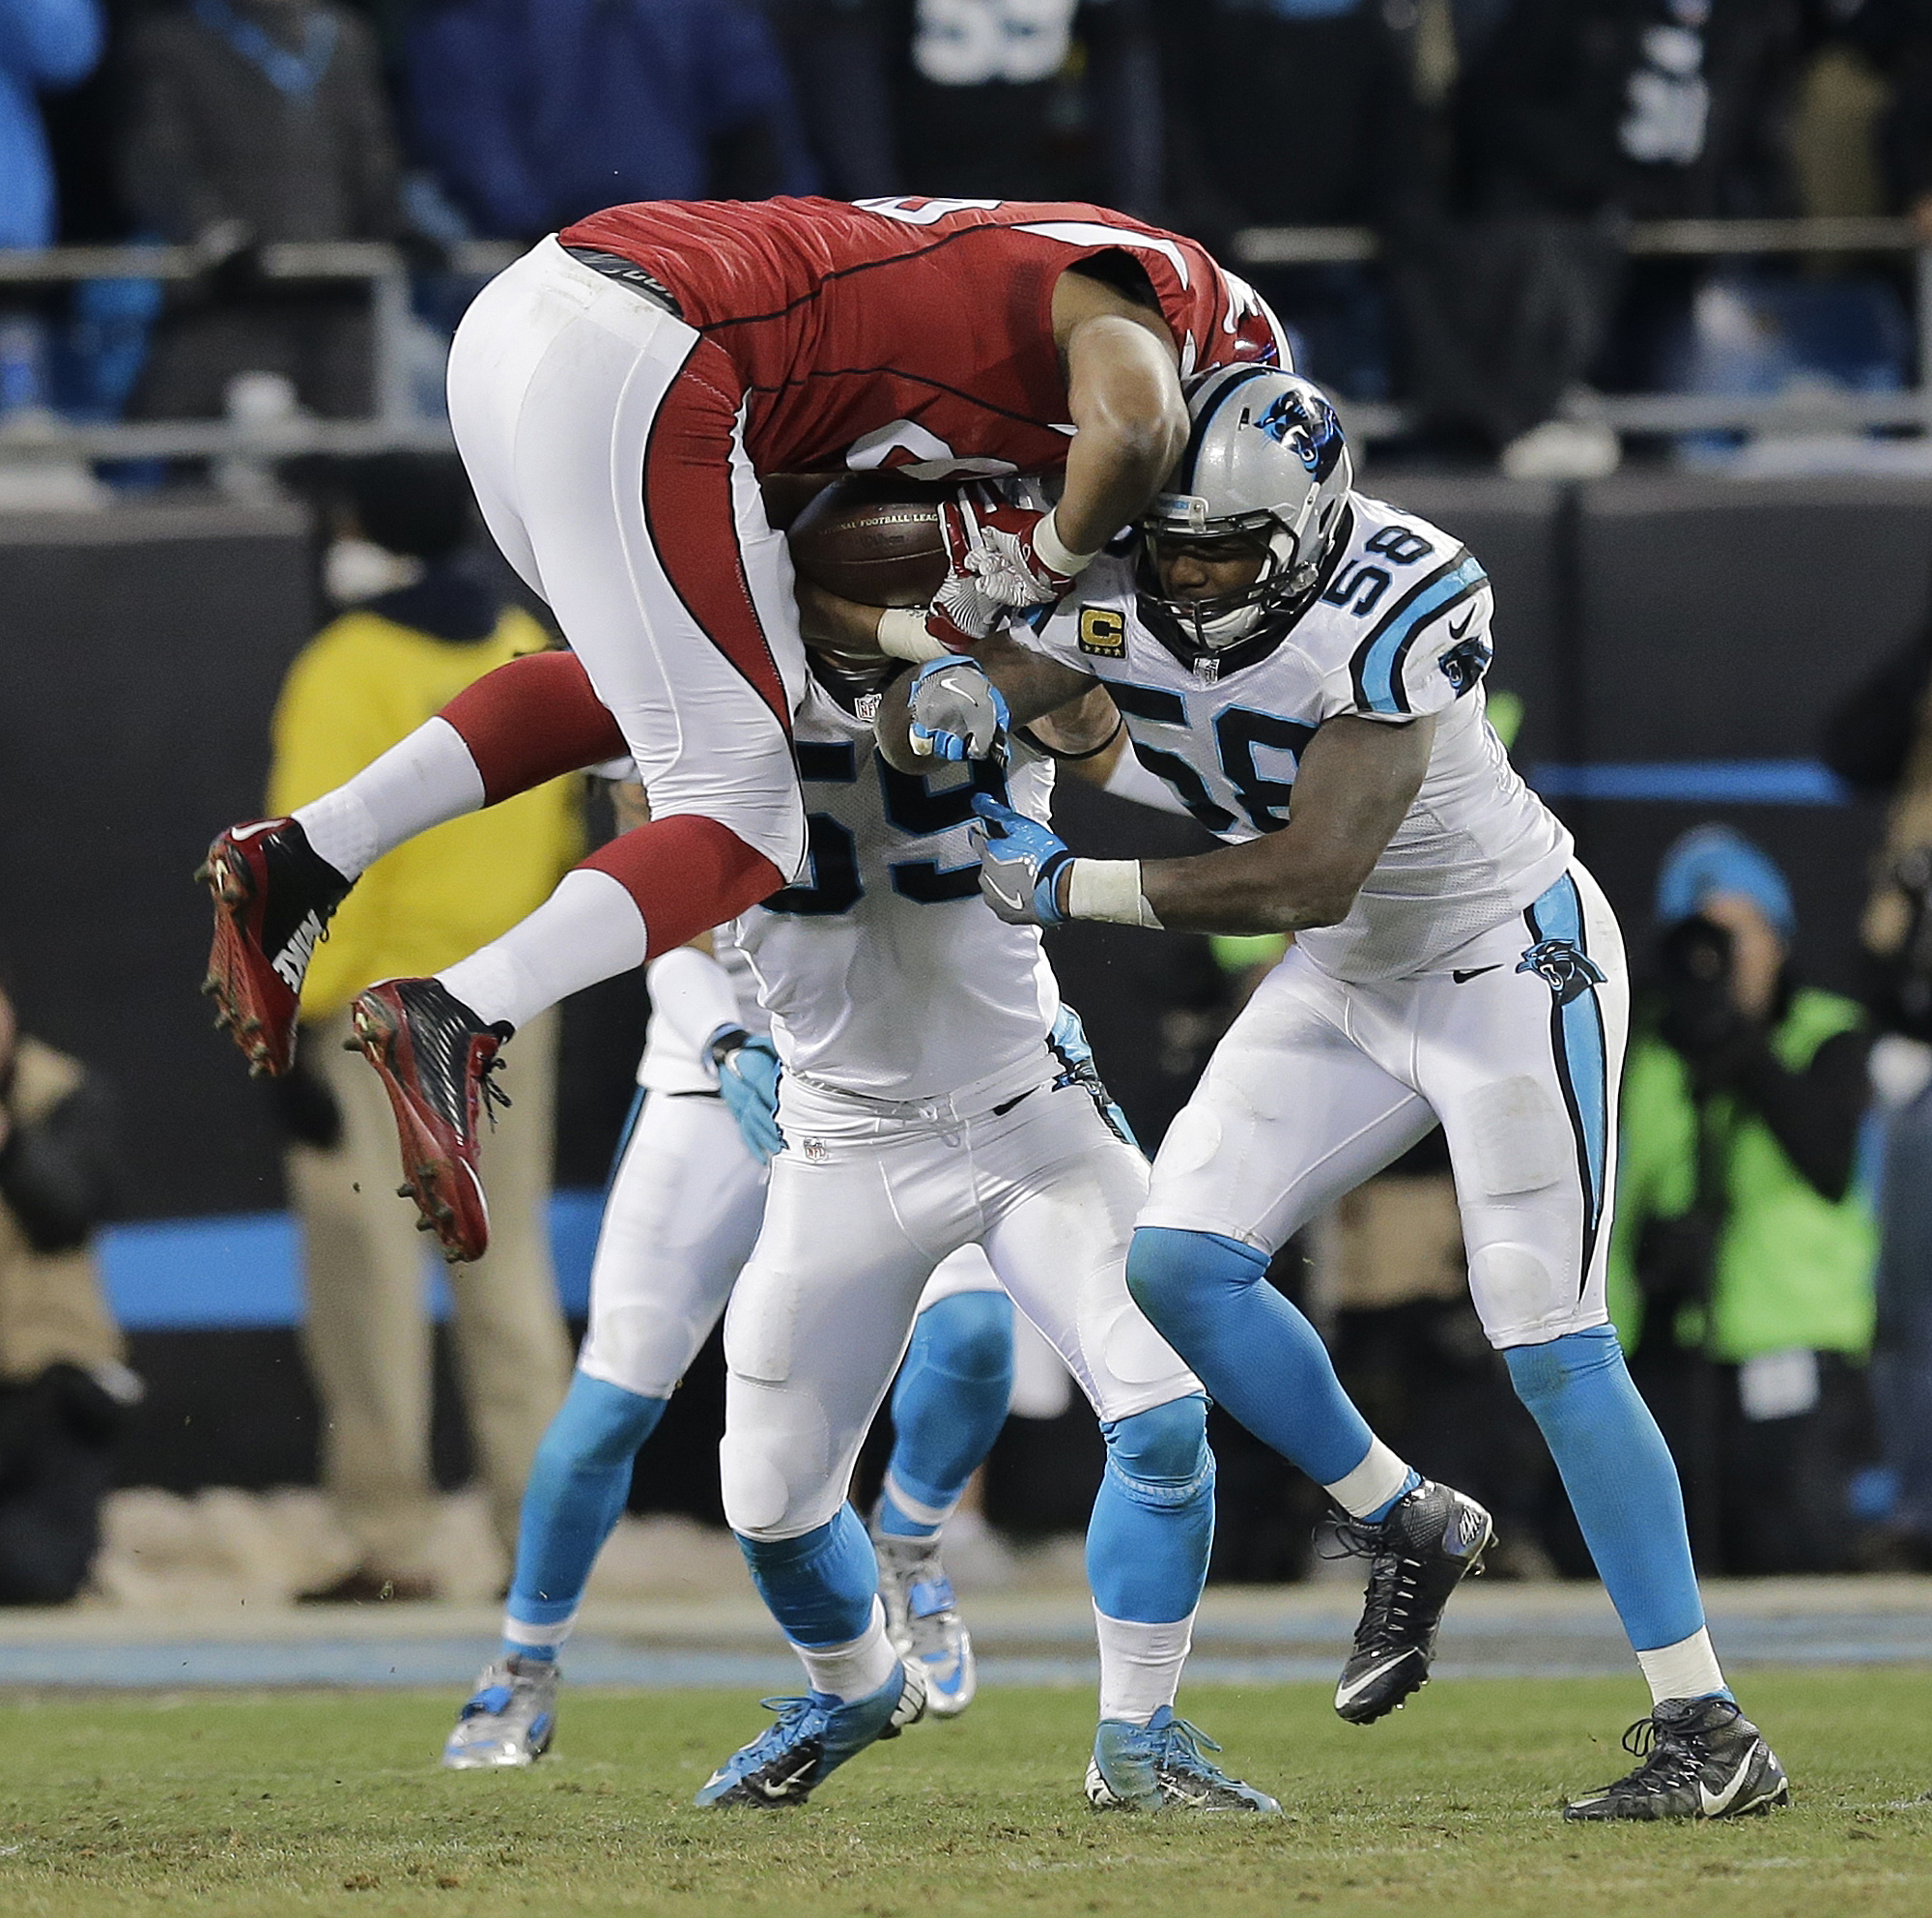 Arizona Cardinals' Darren Fells is hit by Carolina Panthers' Thomas Davis (58) and Luke Kuechly after catching a pass during the first half the NFL football NFC Championship game Sunday, Jan. 24, 2016, in Charlotte, N.C. (AP Photo/David J. Phillip)